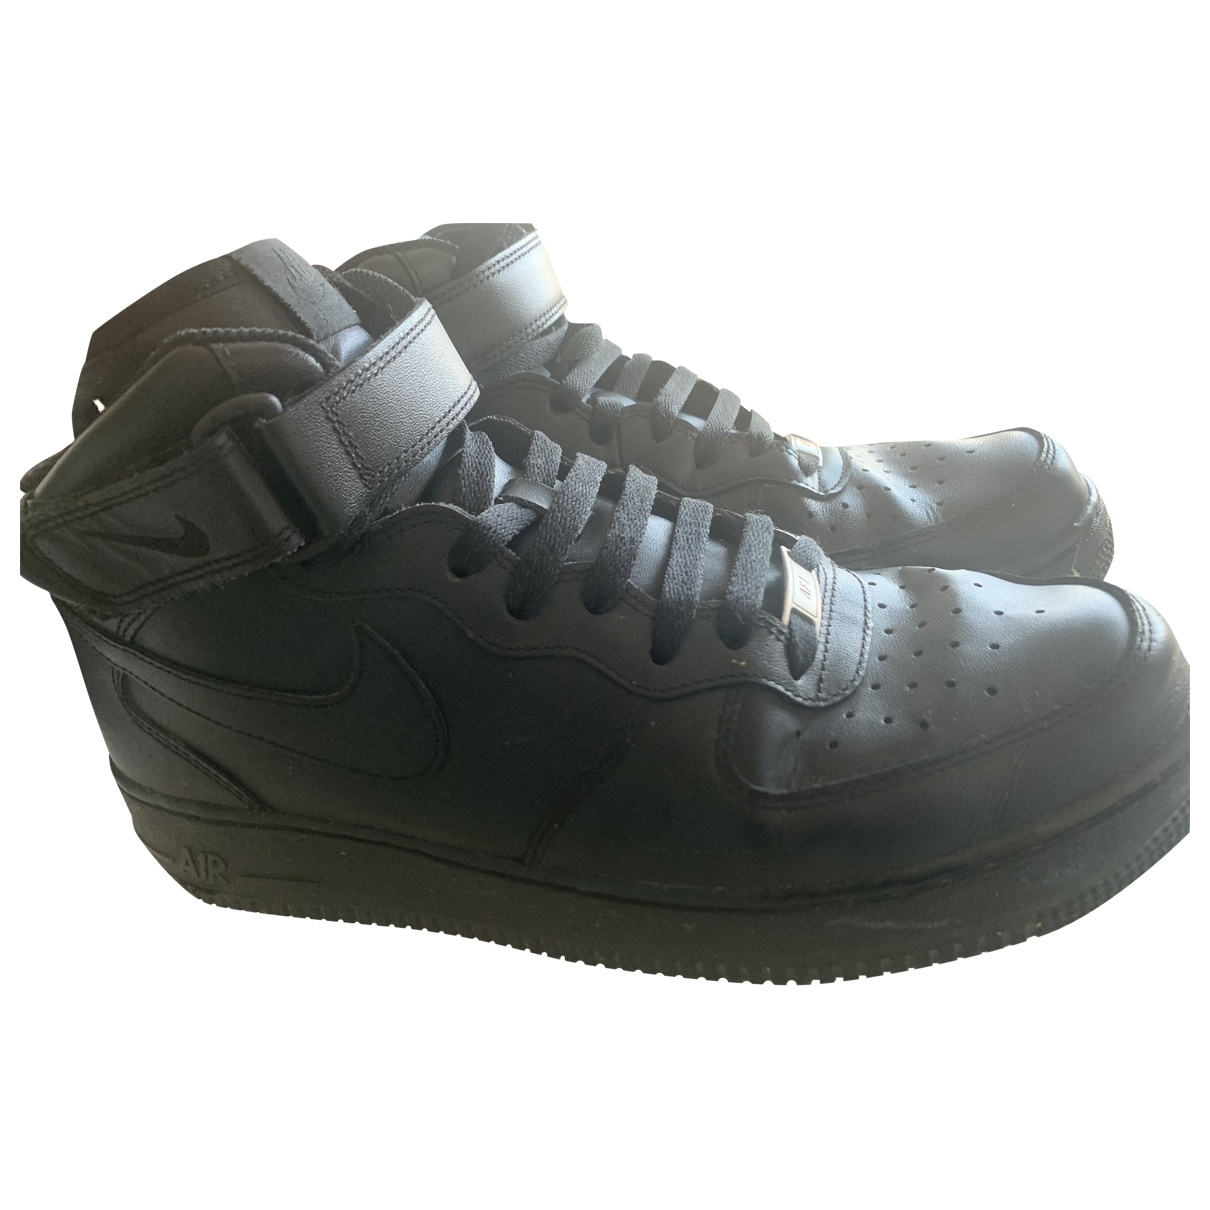 Nike Air Force 1 Black Leather Trainers for Men 44 EU